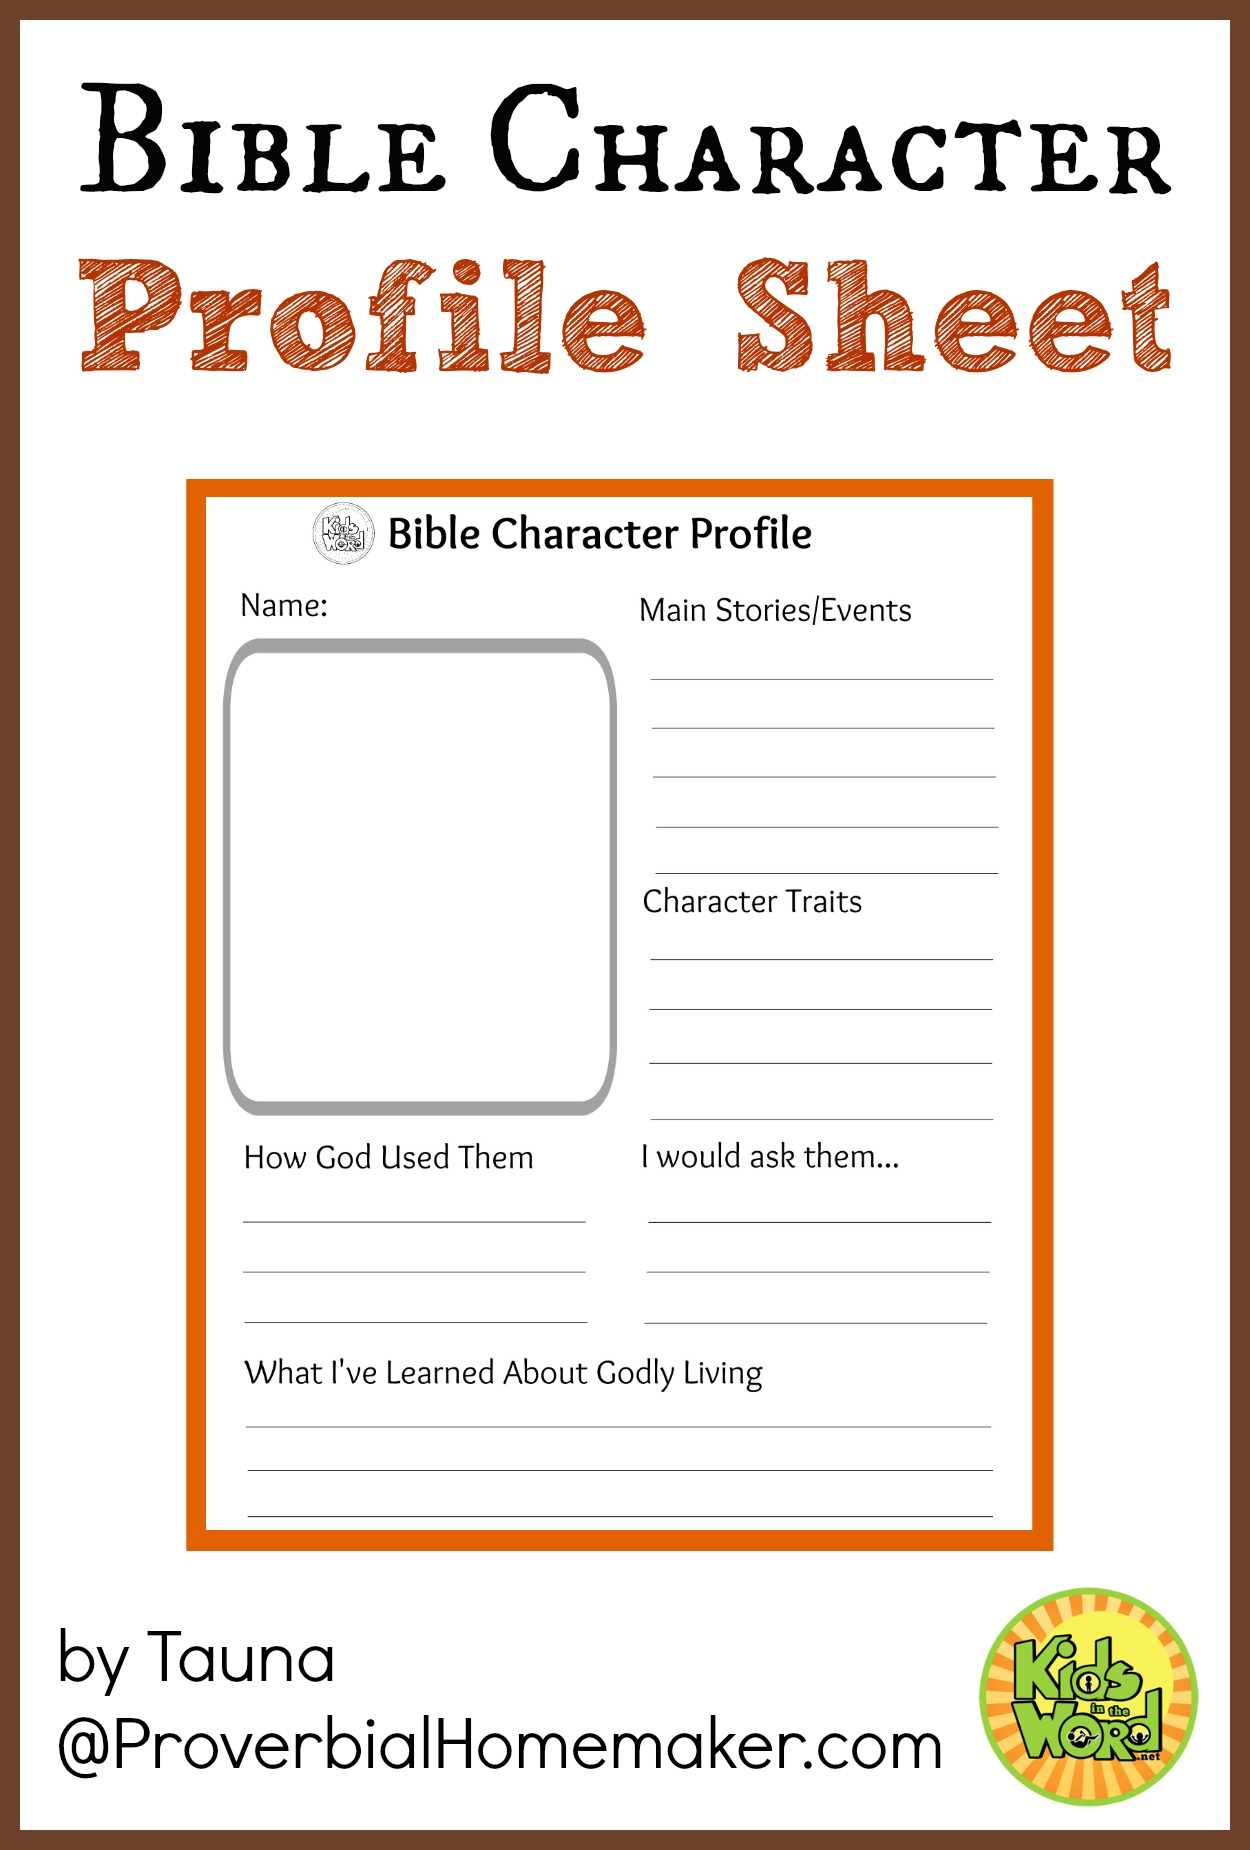 Worksheets Bible Character Study Worksheet bible character profile sheet